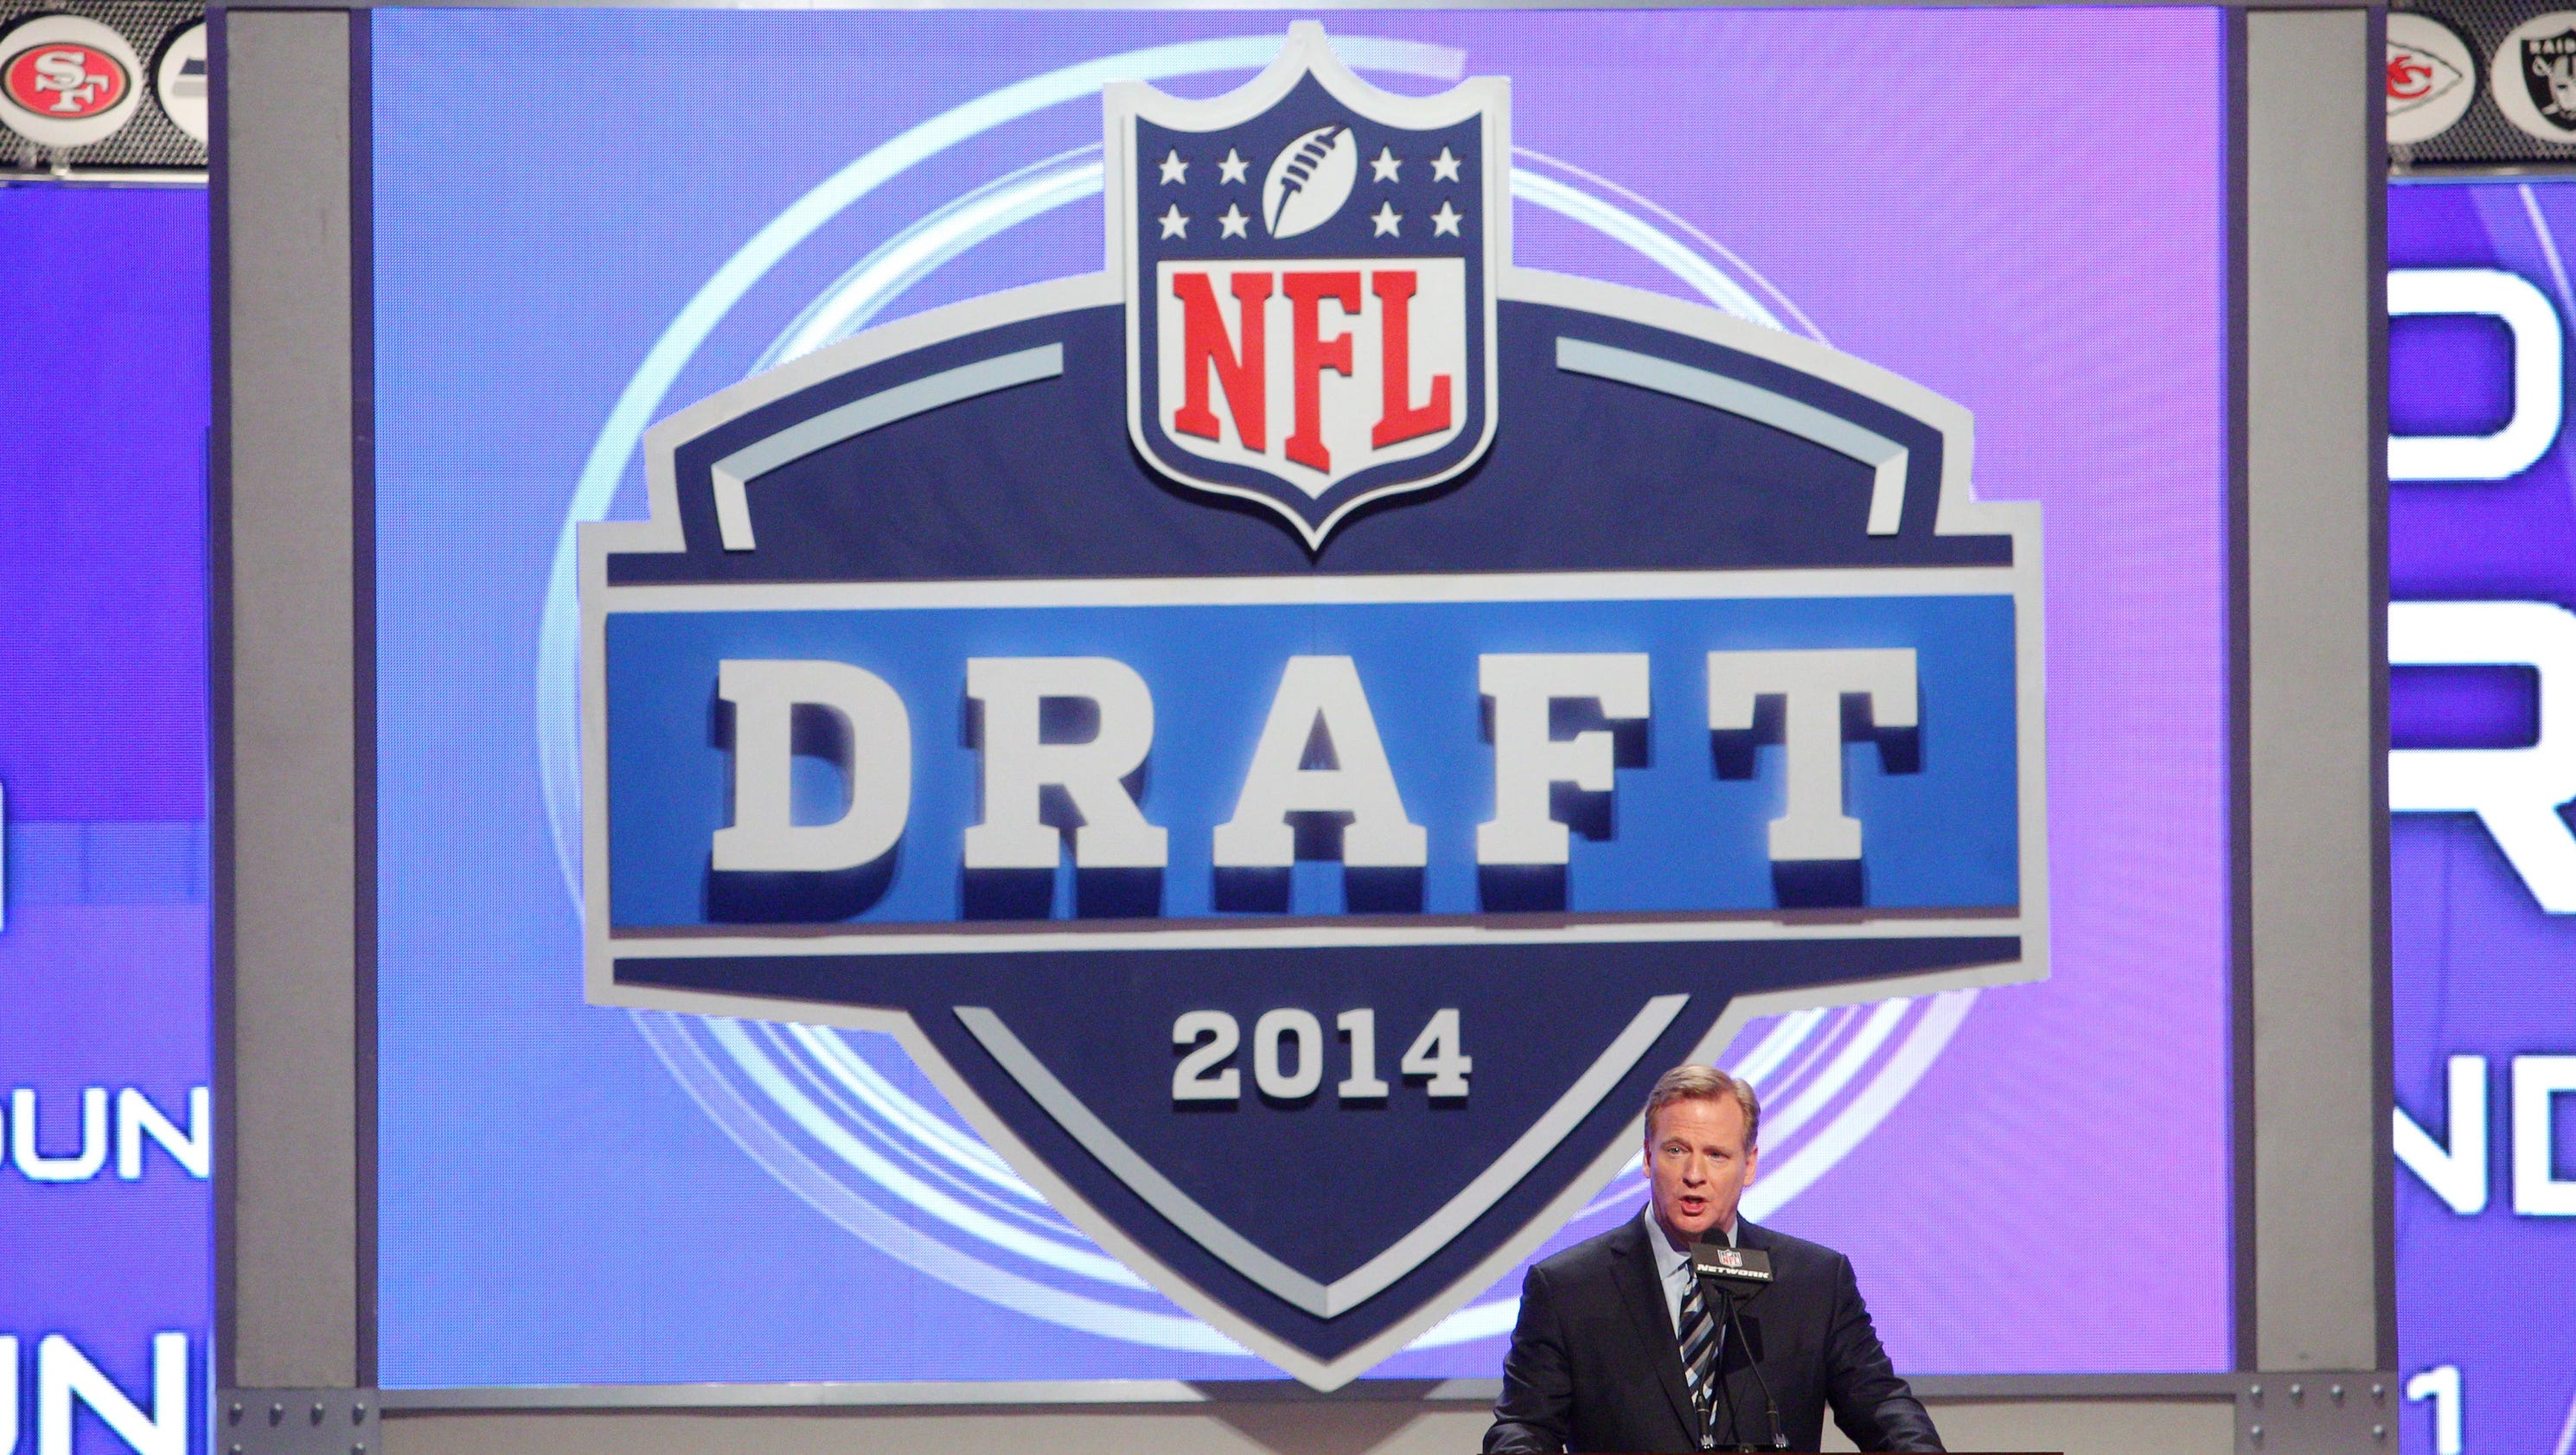 Building Or Bolting 2015 Draft Could Be Start Or End For Stl